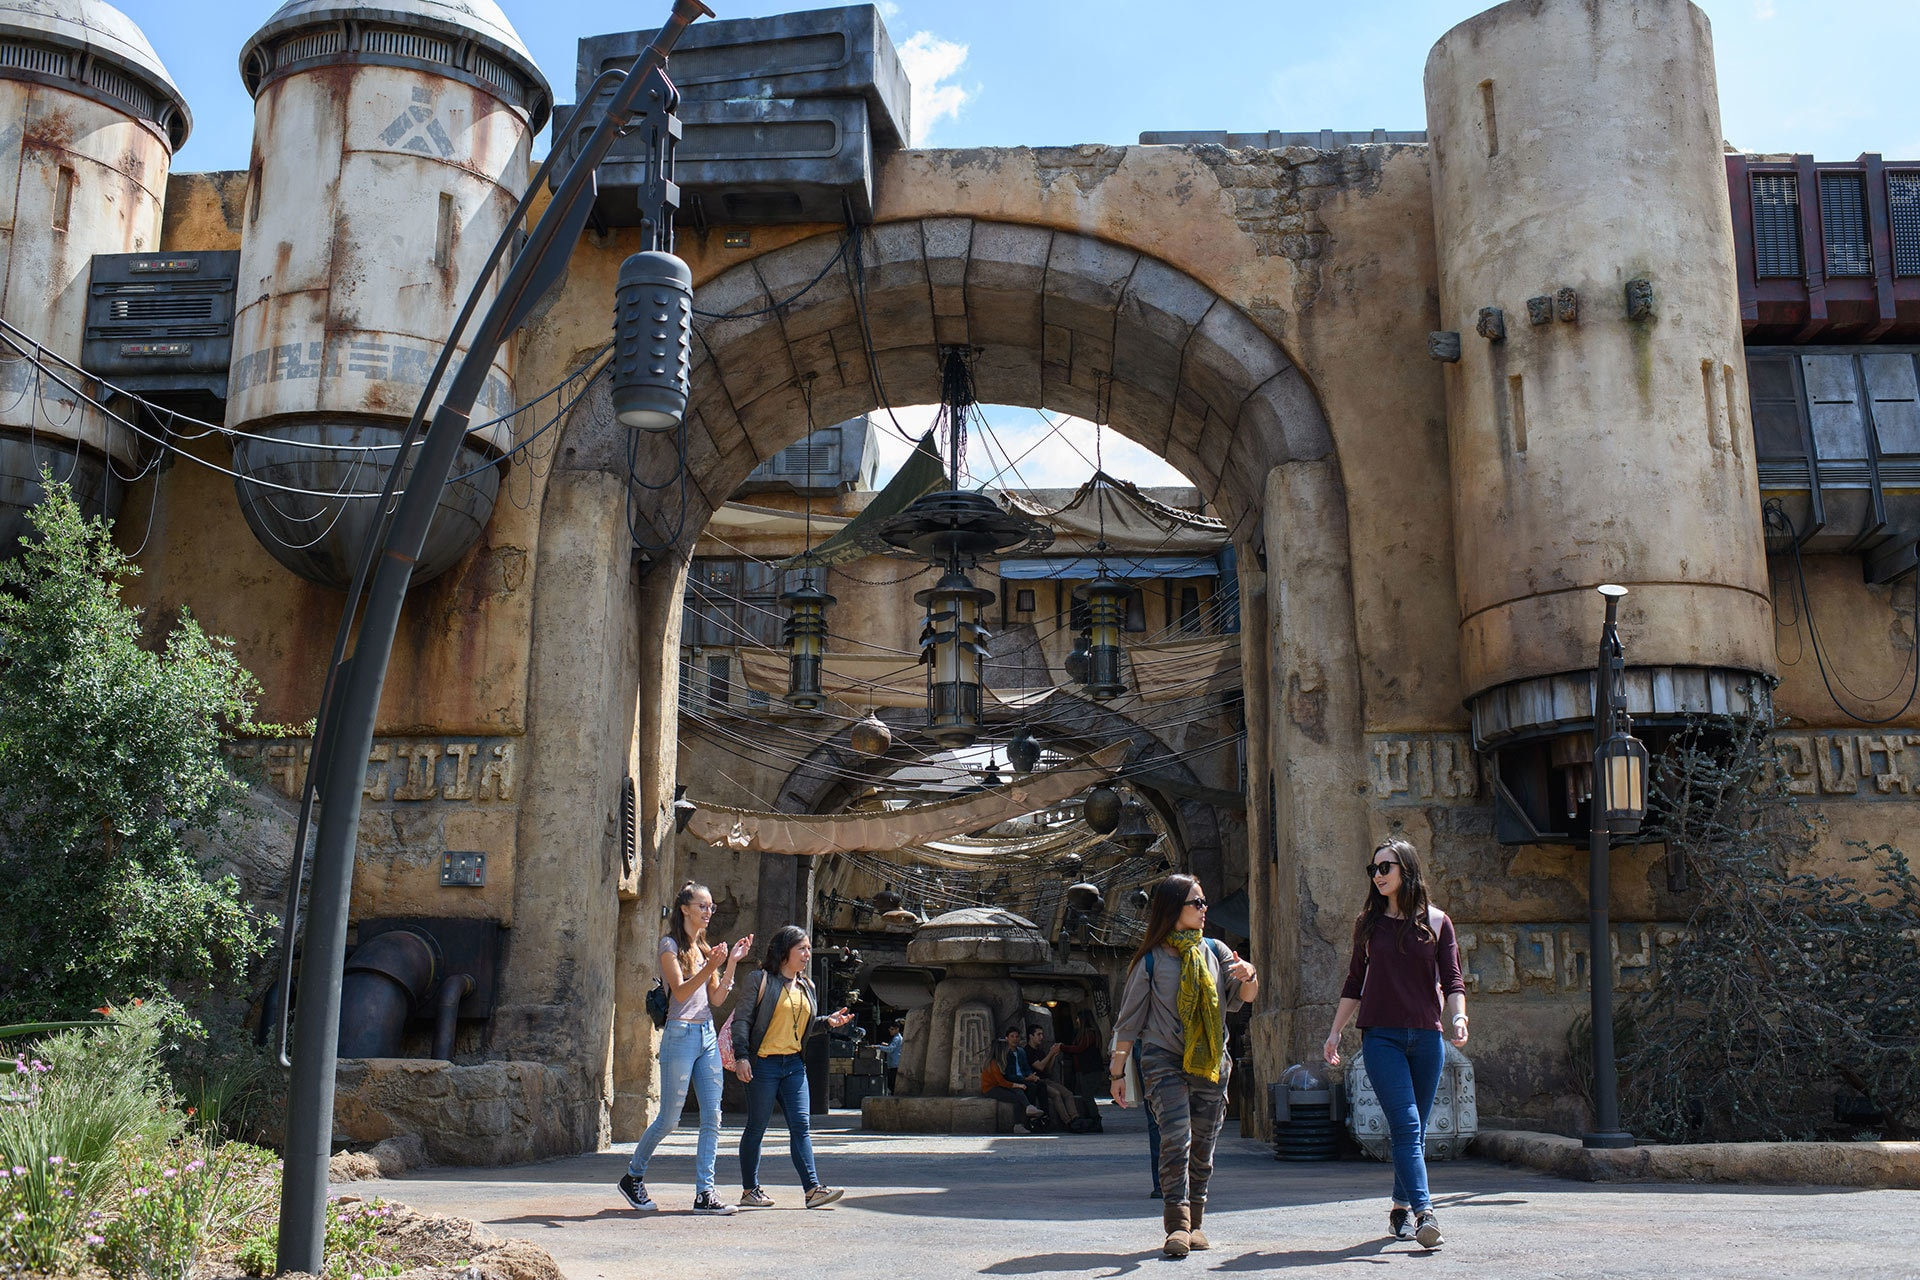 Once on Batuu, guests will be able to wander the lively marketplace of Black Spire Outpost and encounter a robust collection of merchant shops and stalls filled with authentic Star Wars creations.